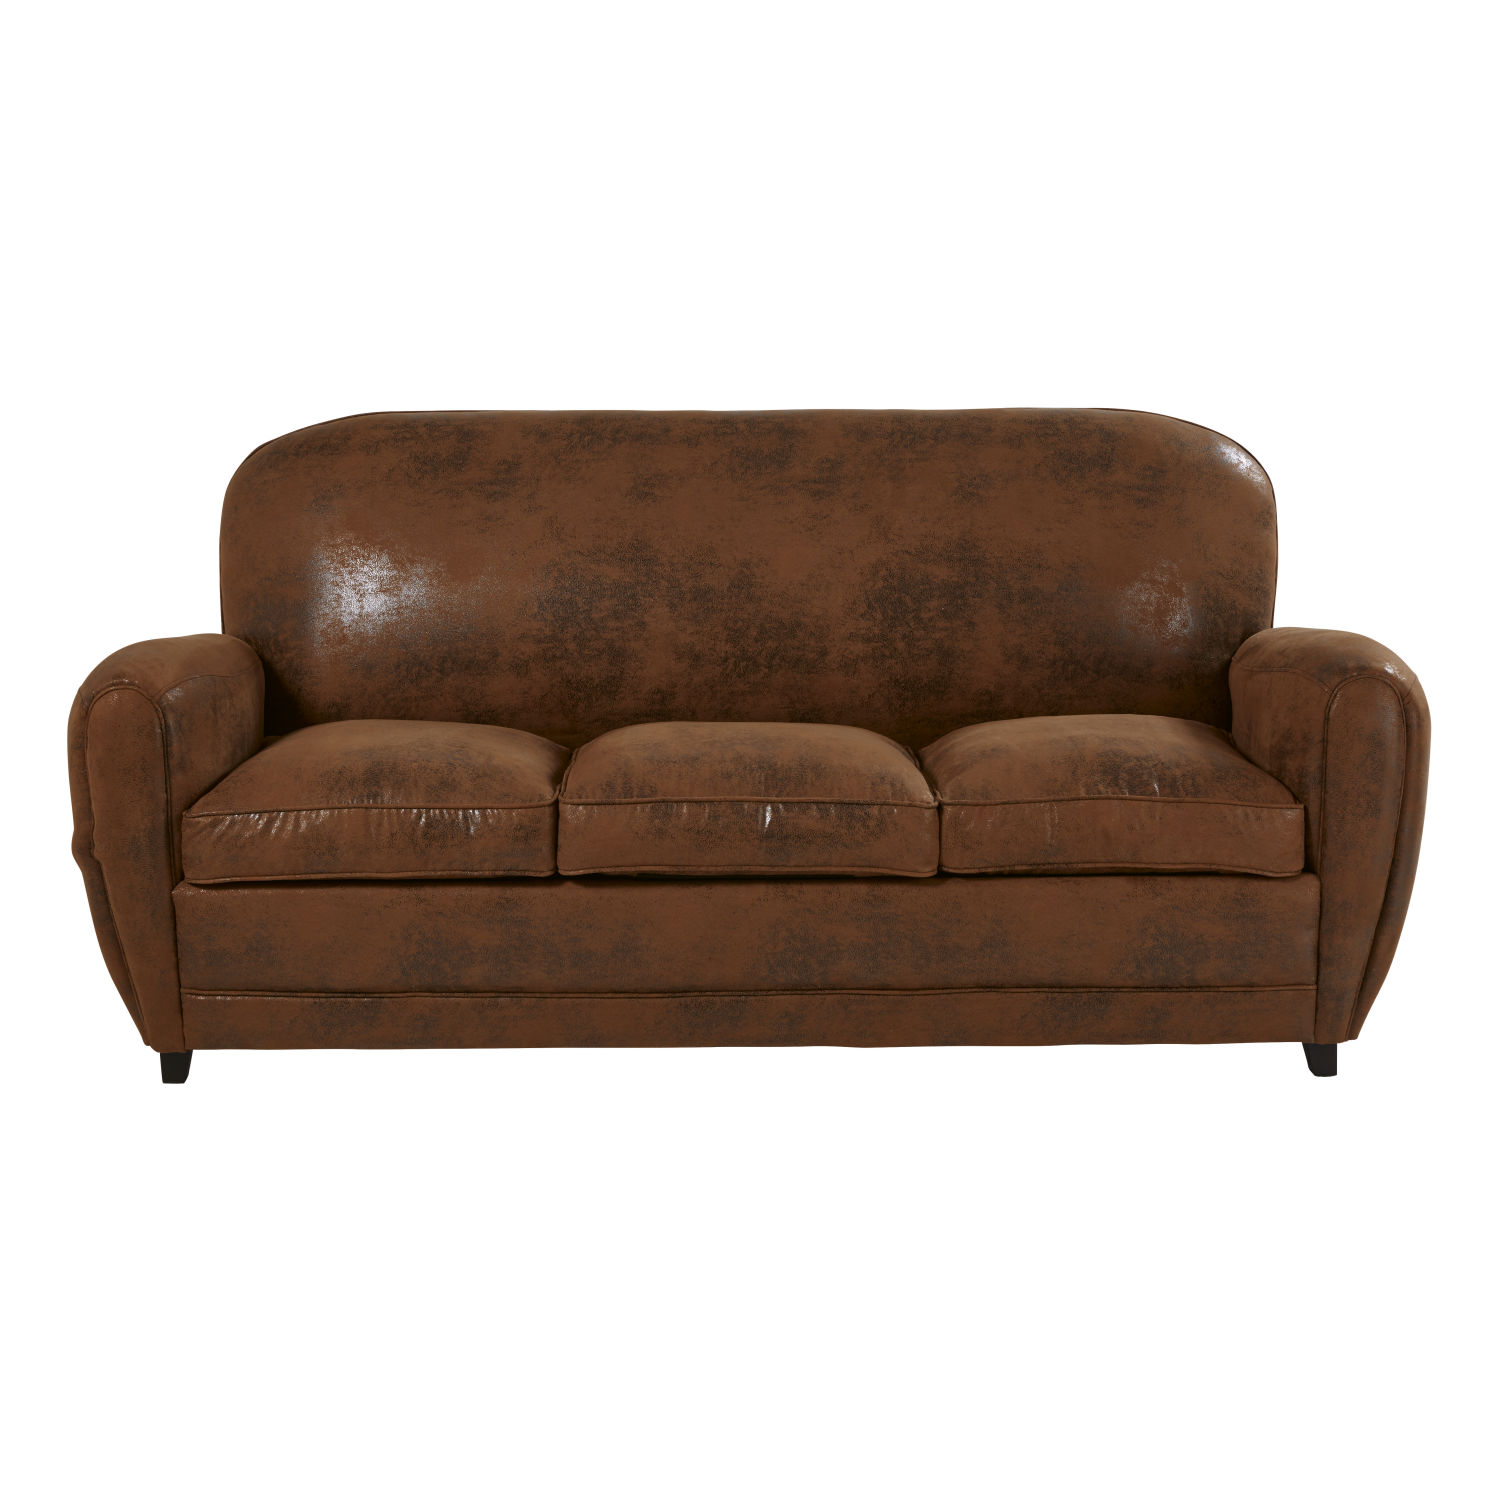 Sofa Vintage A Vendre Brown Suede Sofa